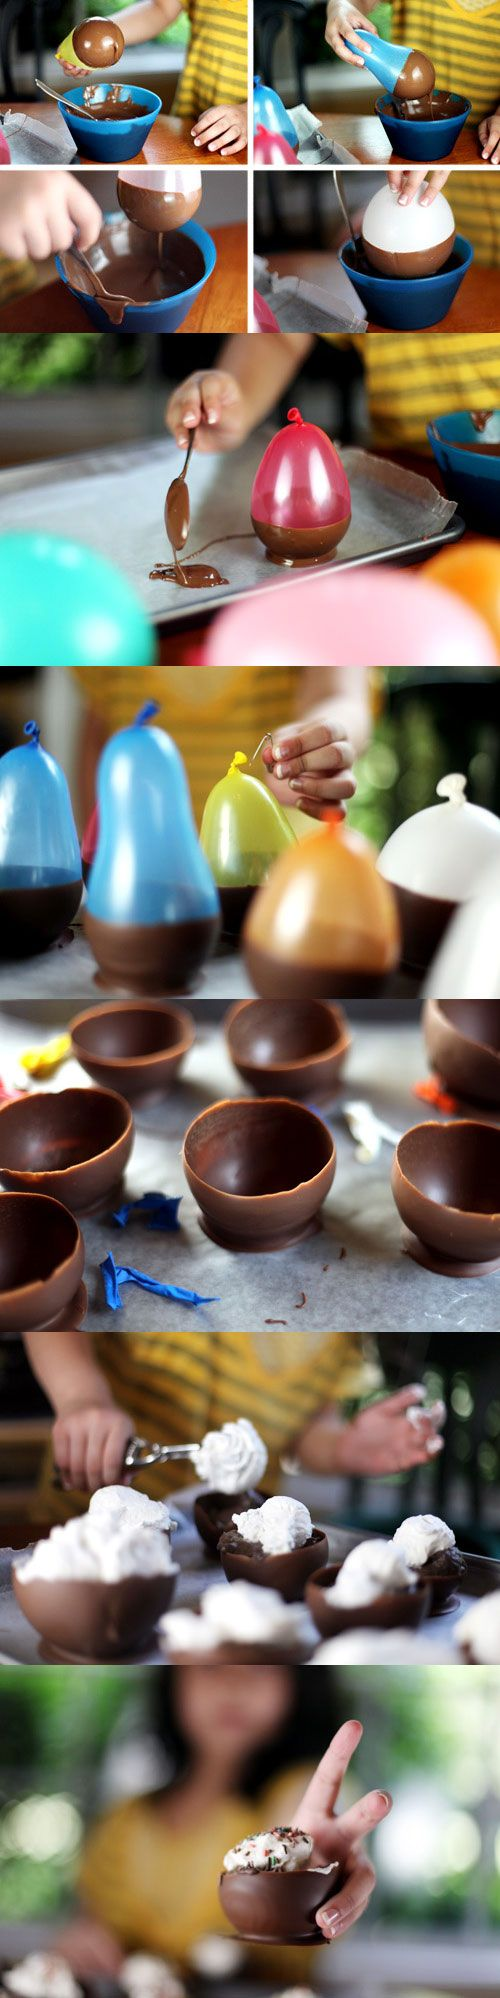 Make your own chocolate bowls for ice cream ?